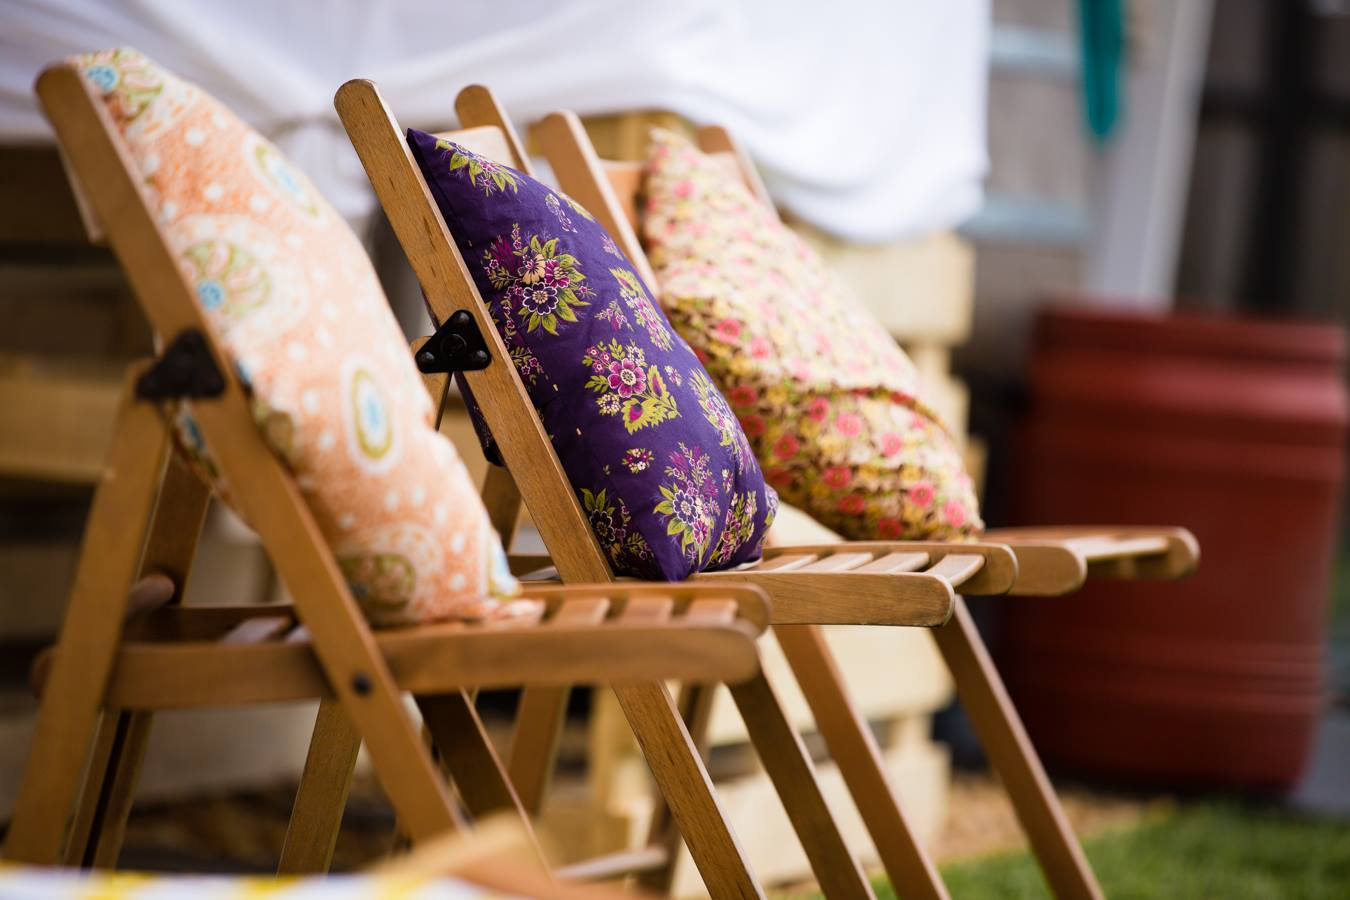 VINTAGE INSPIRED CUSHIONS